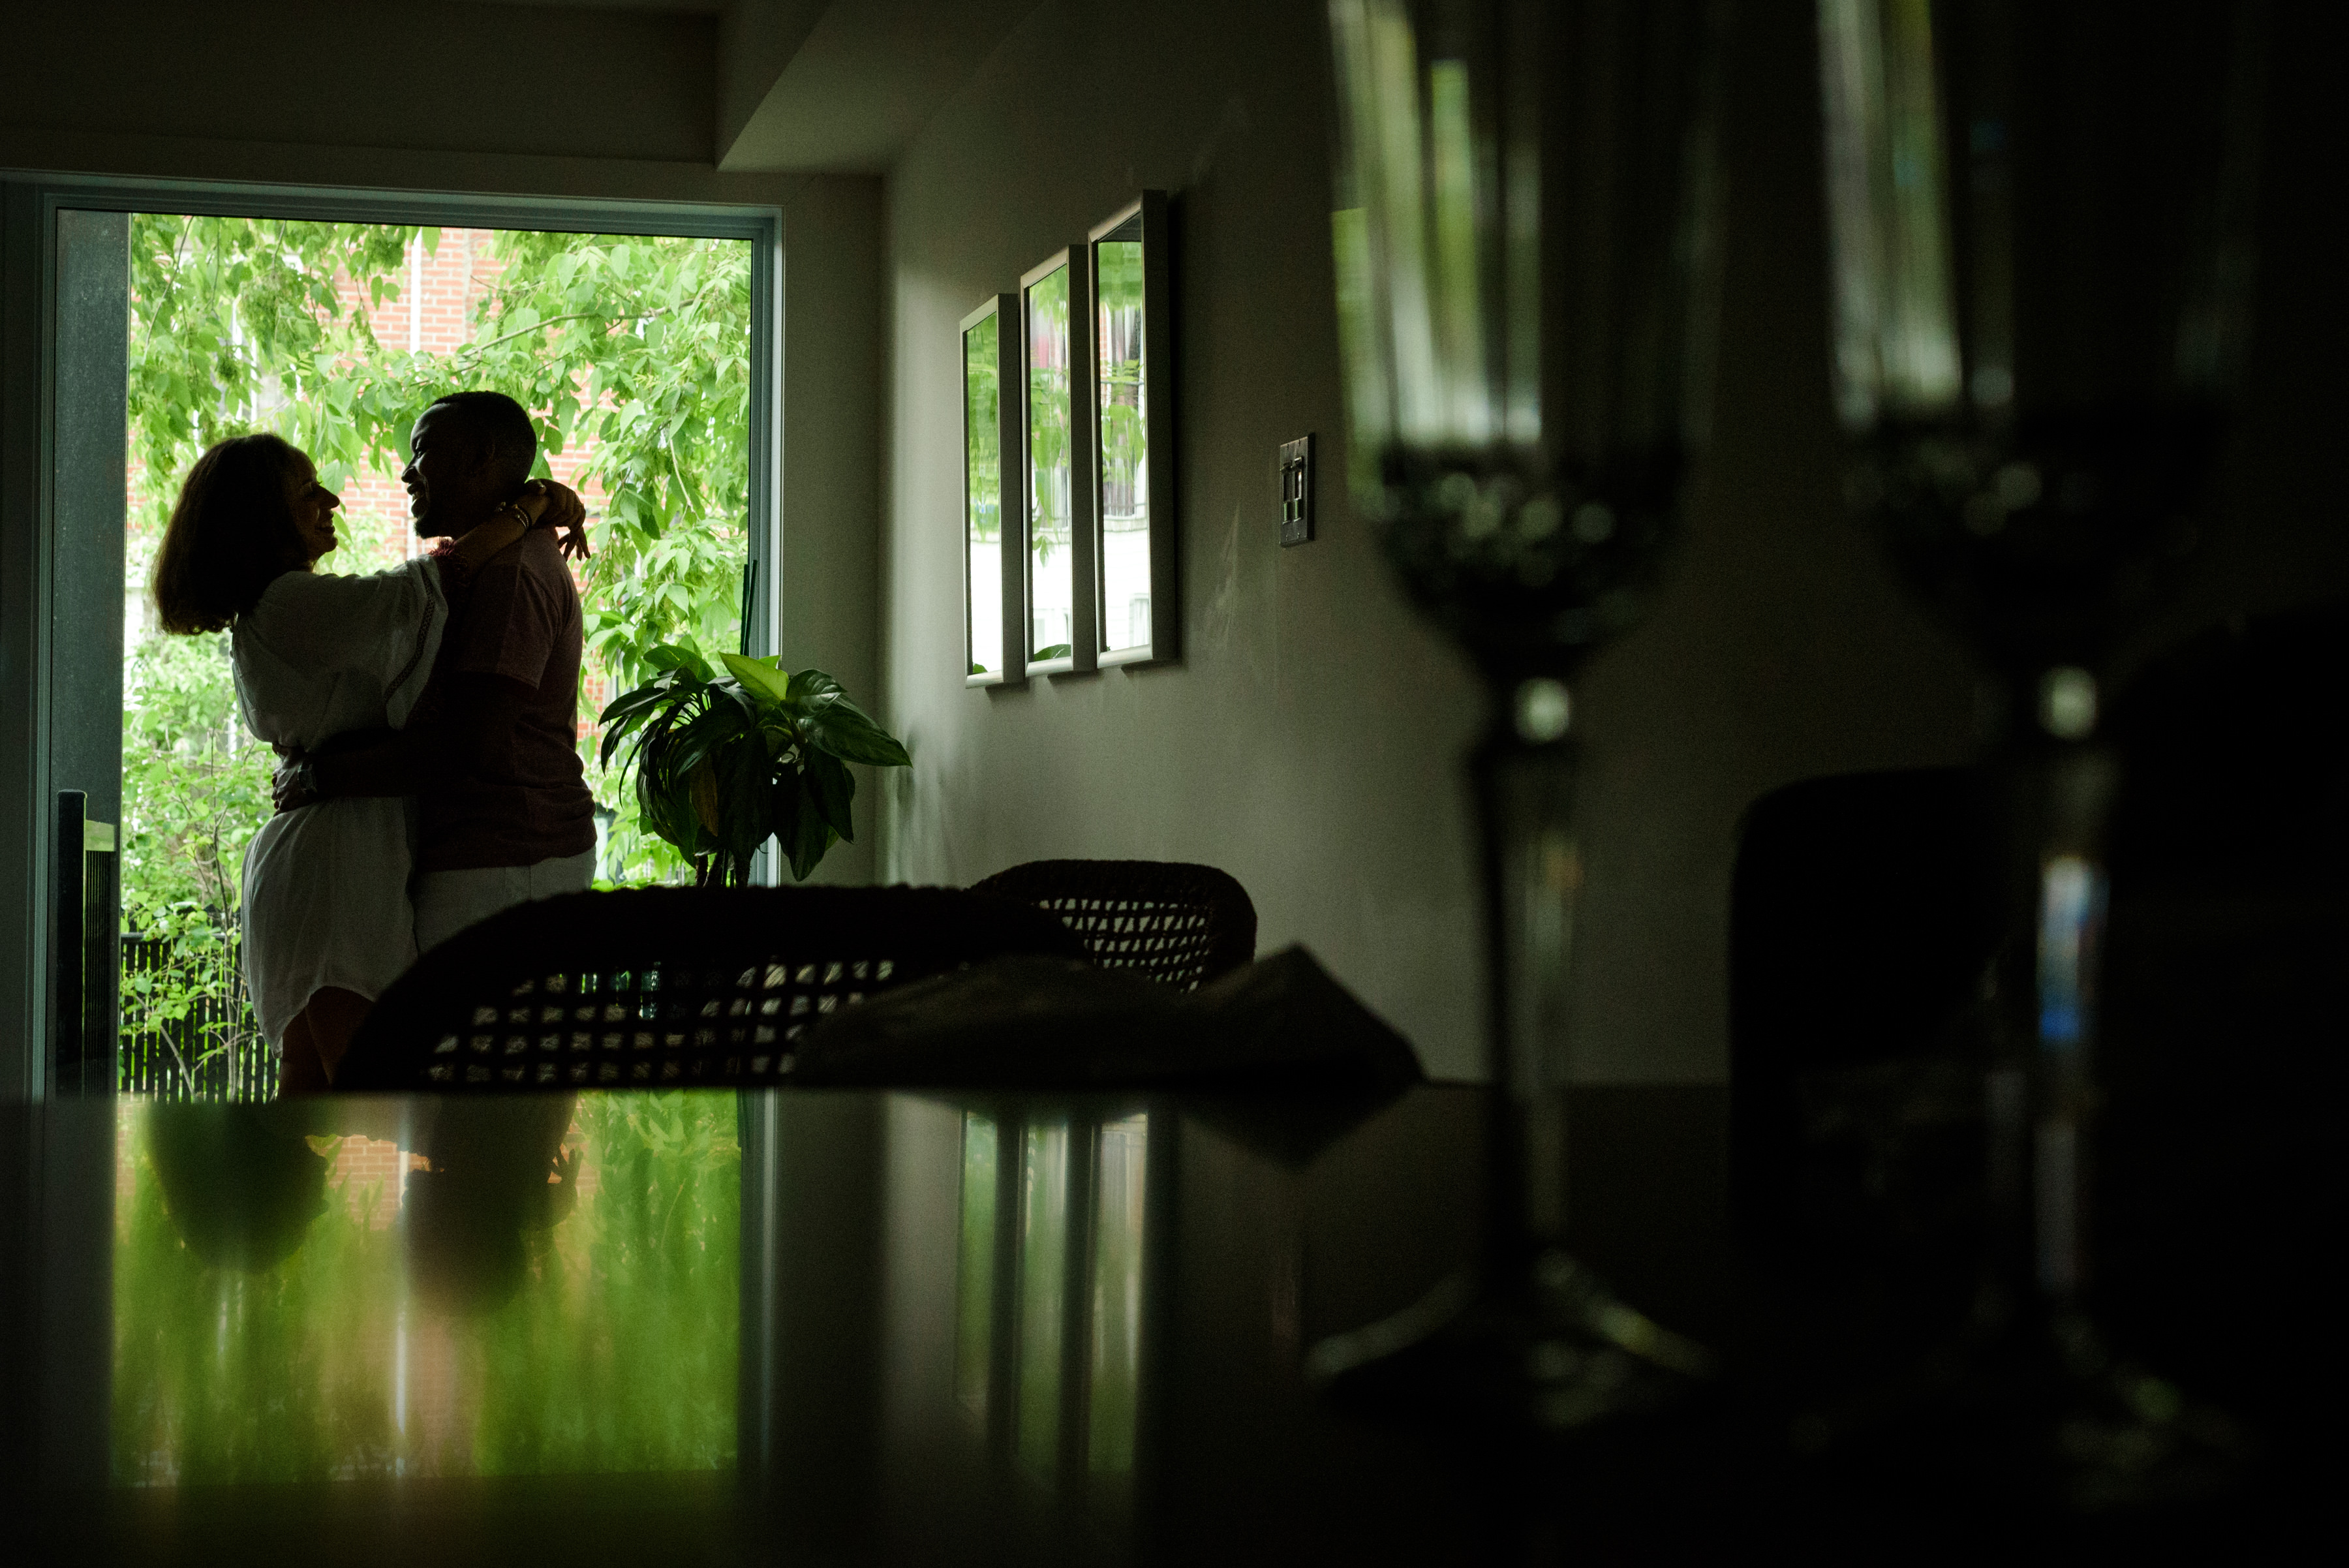 Couple silhouetted in their window